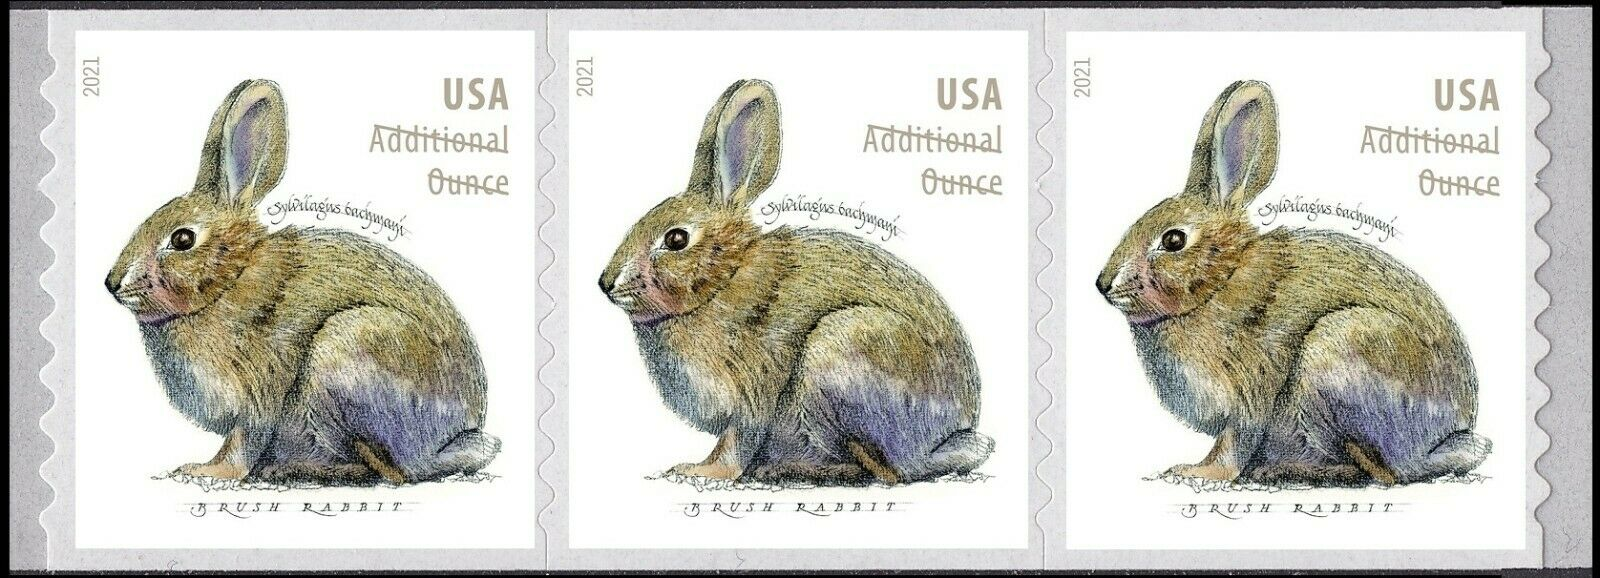 United States: Brush Rabbit, 24 January 2021 (coil strip of 3)